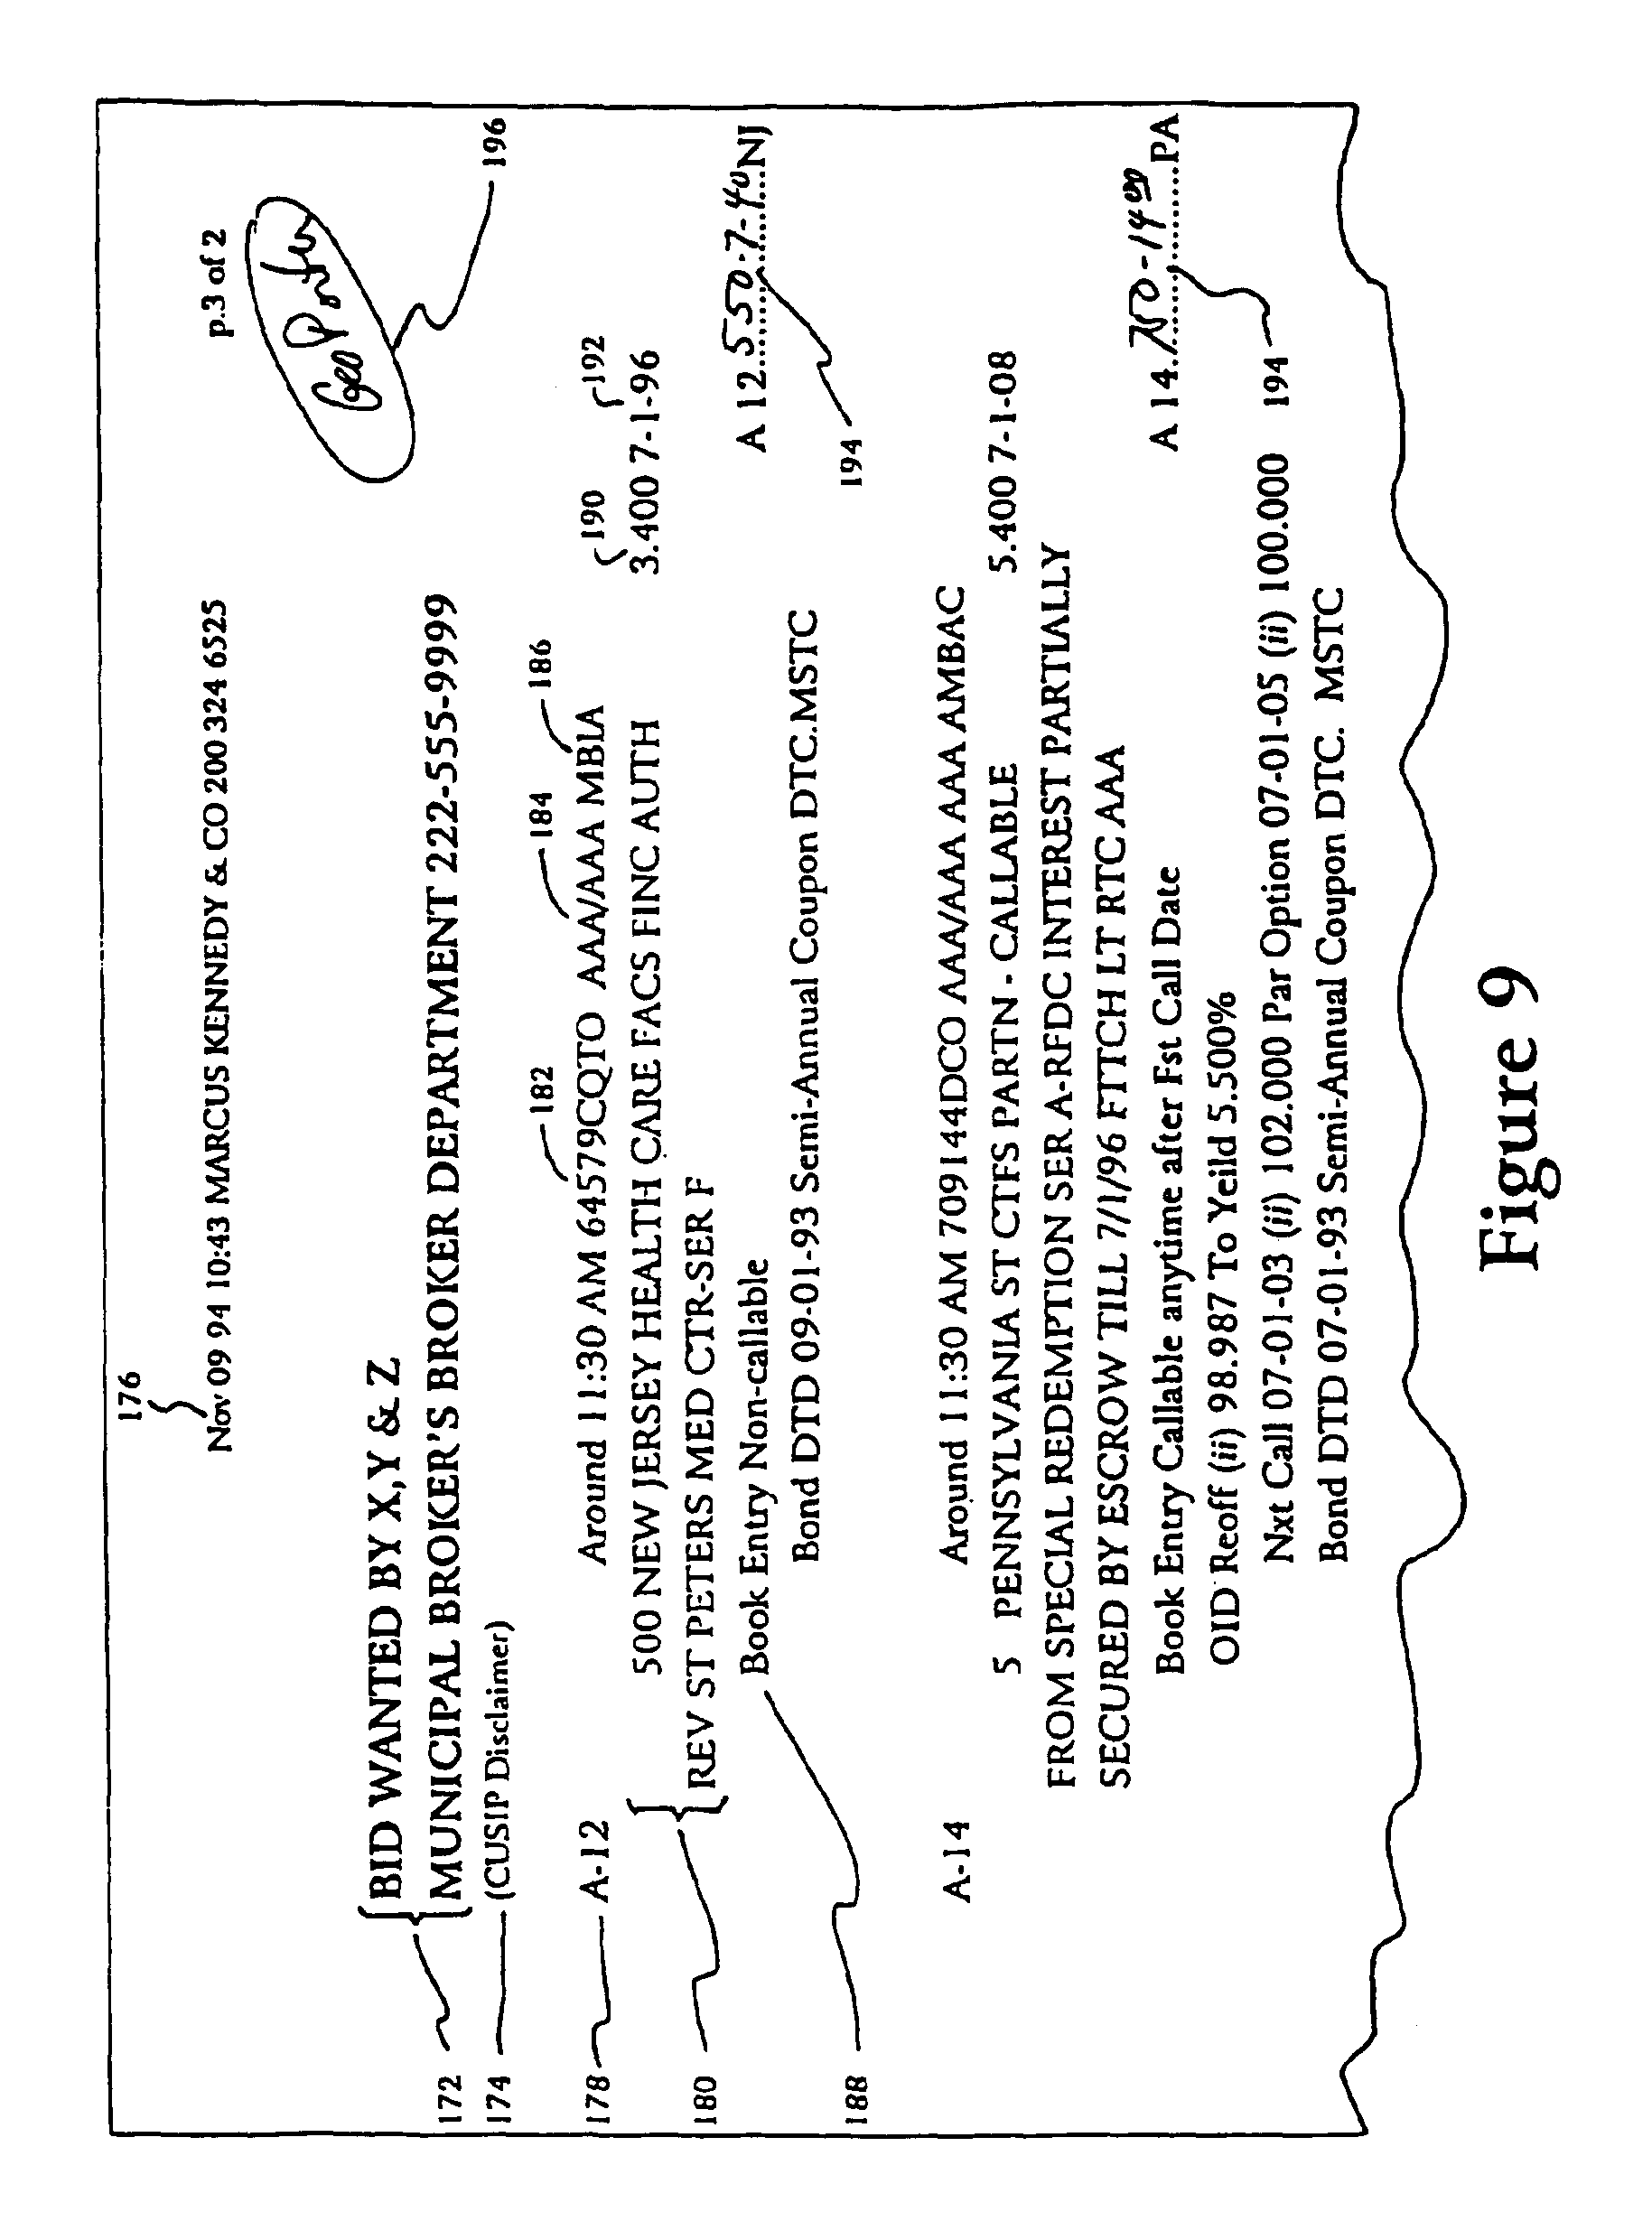 Patent US Methods and systems for retrieving data